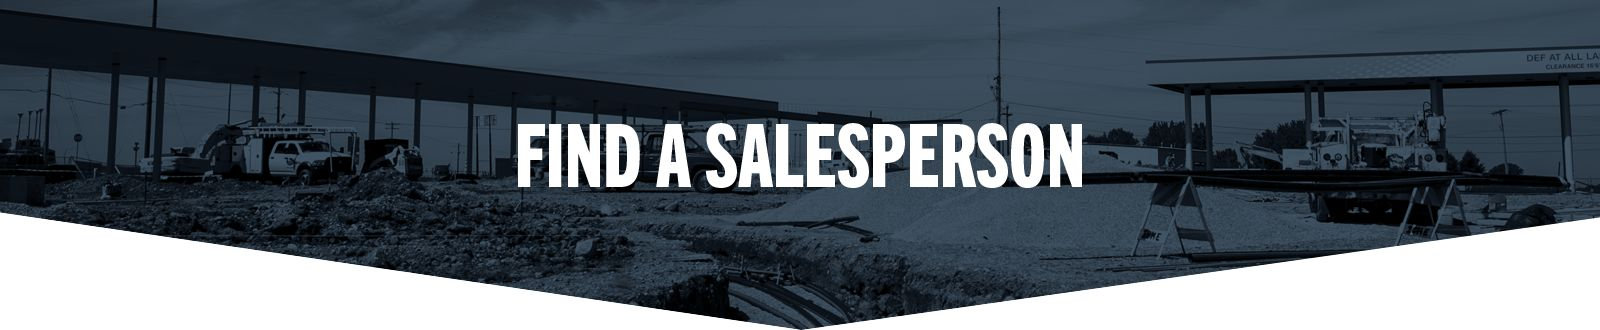 Find-Sales-Banner.psd